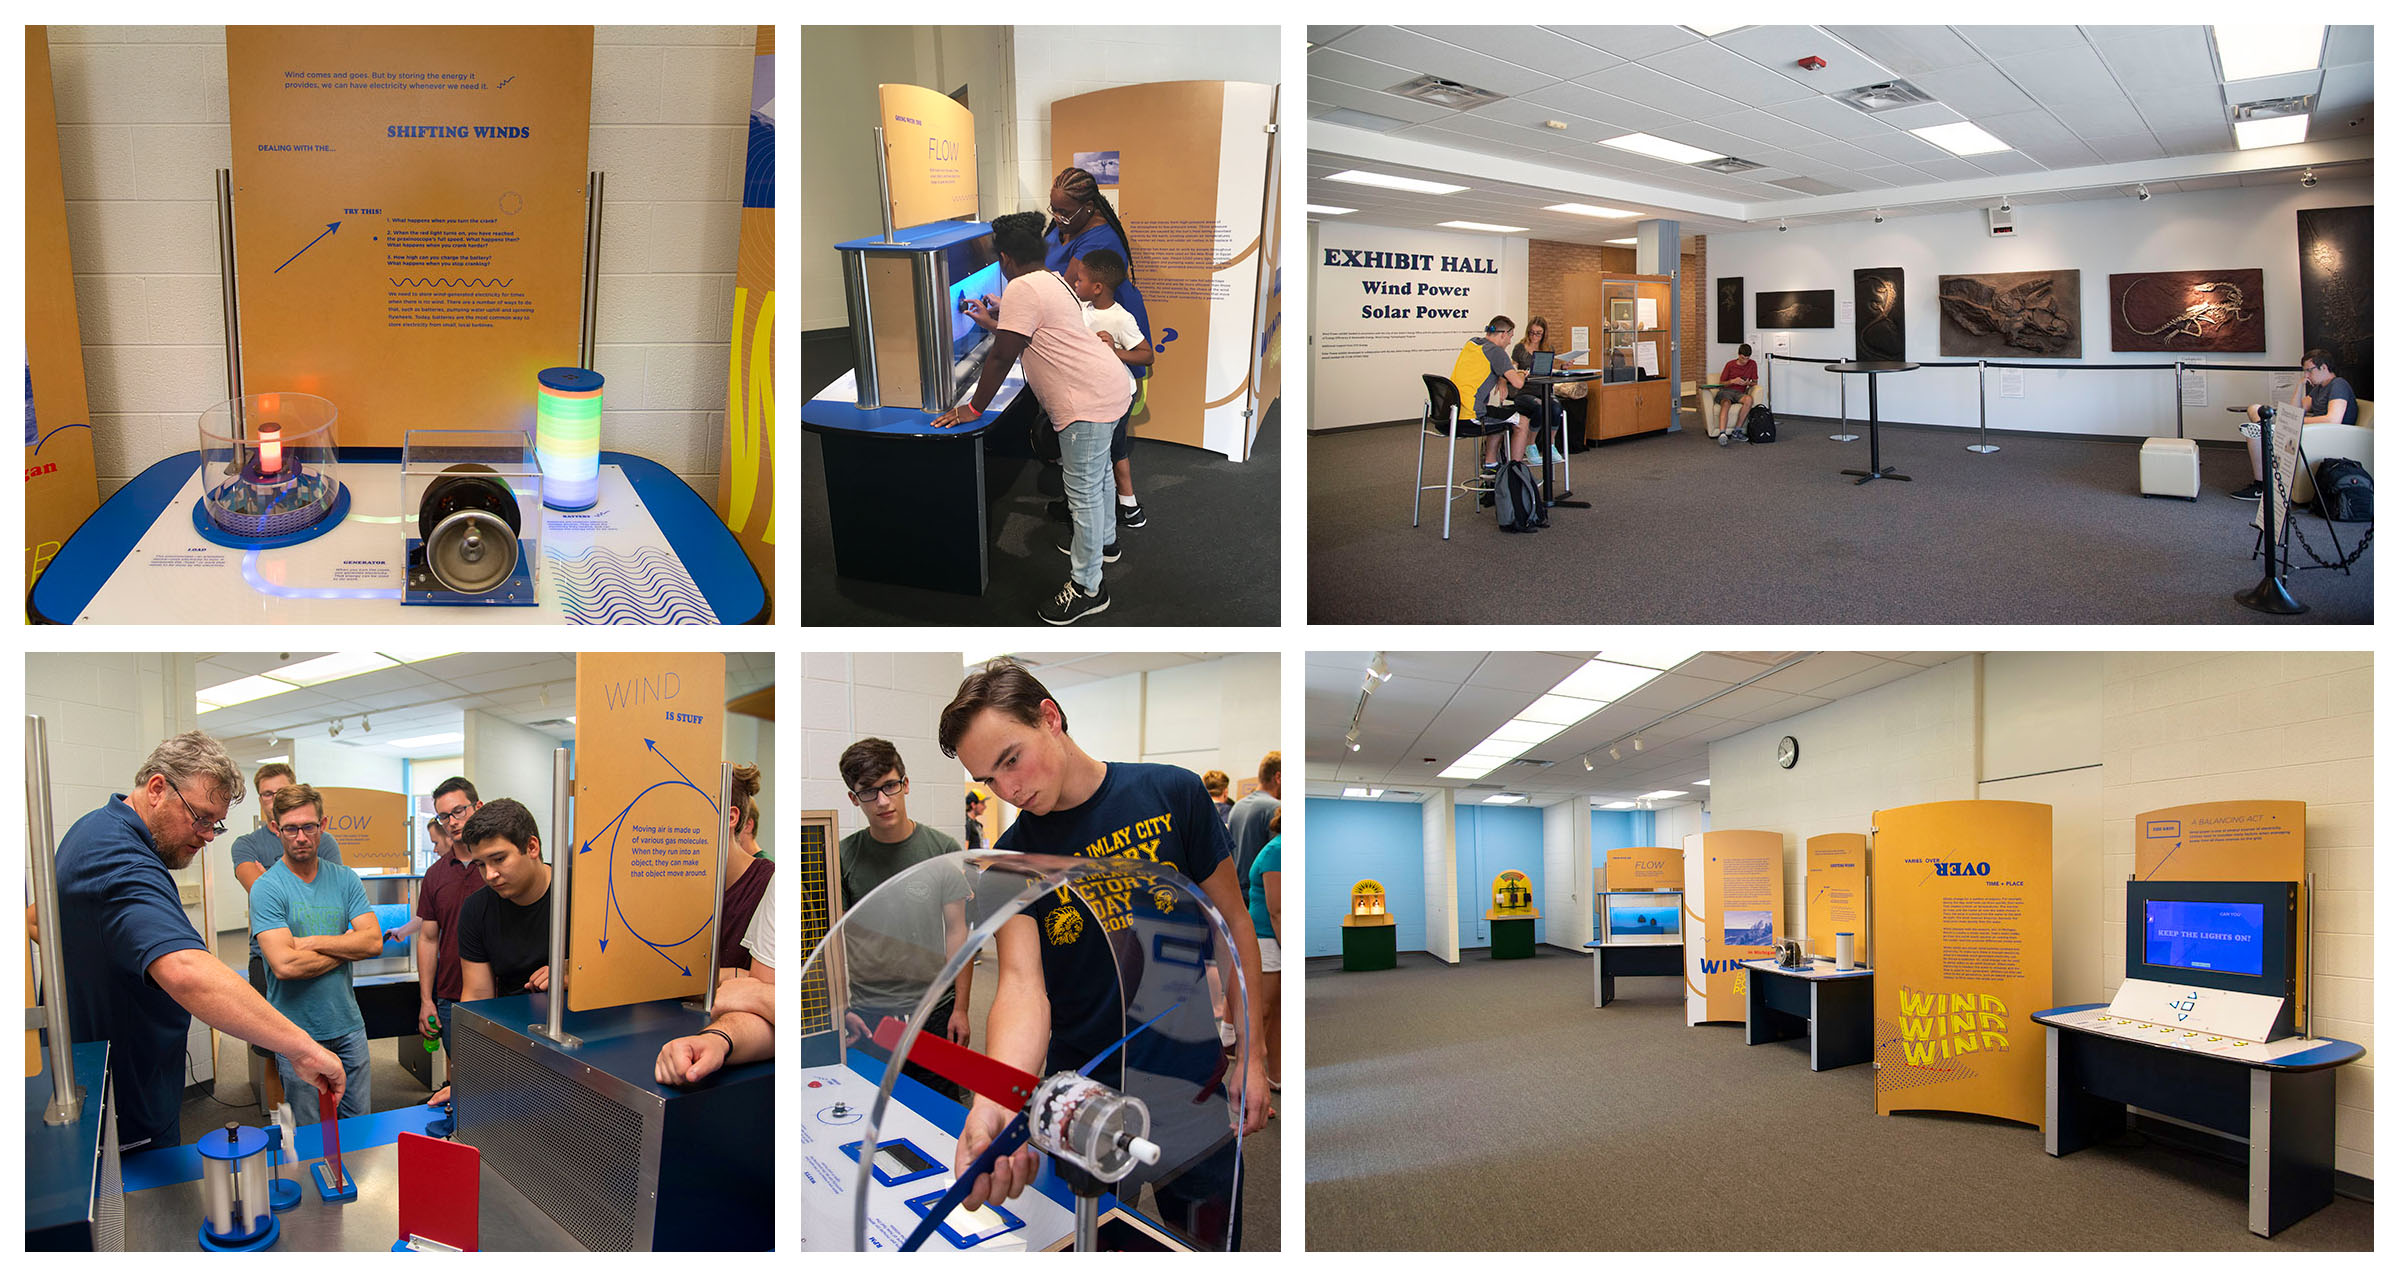 Collage of photos showing exhibits at the SC4 Experience Center.